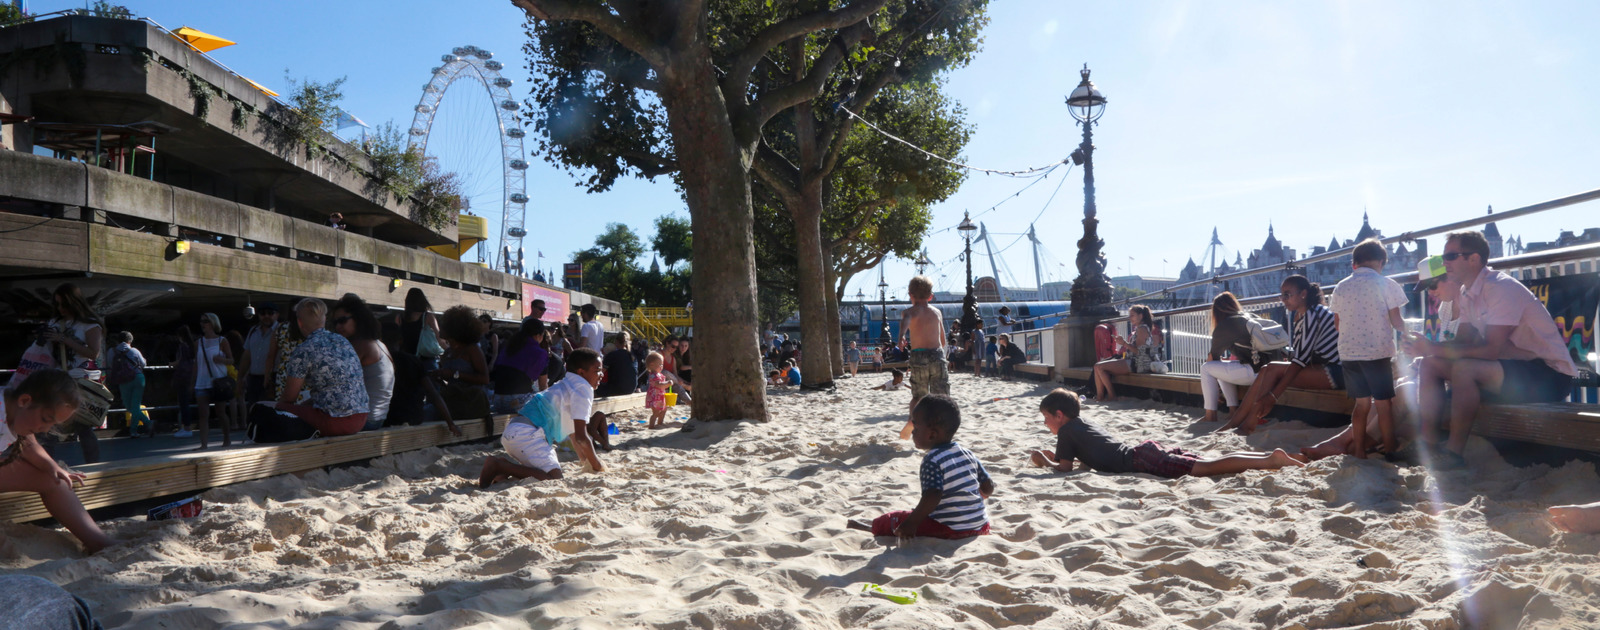 Image result for beach on the southbank london